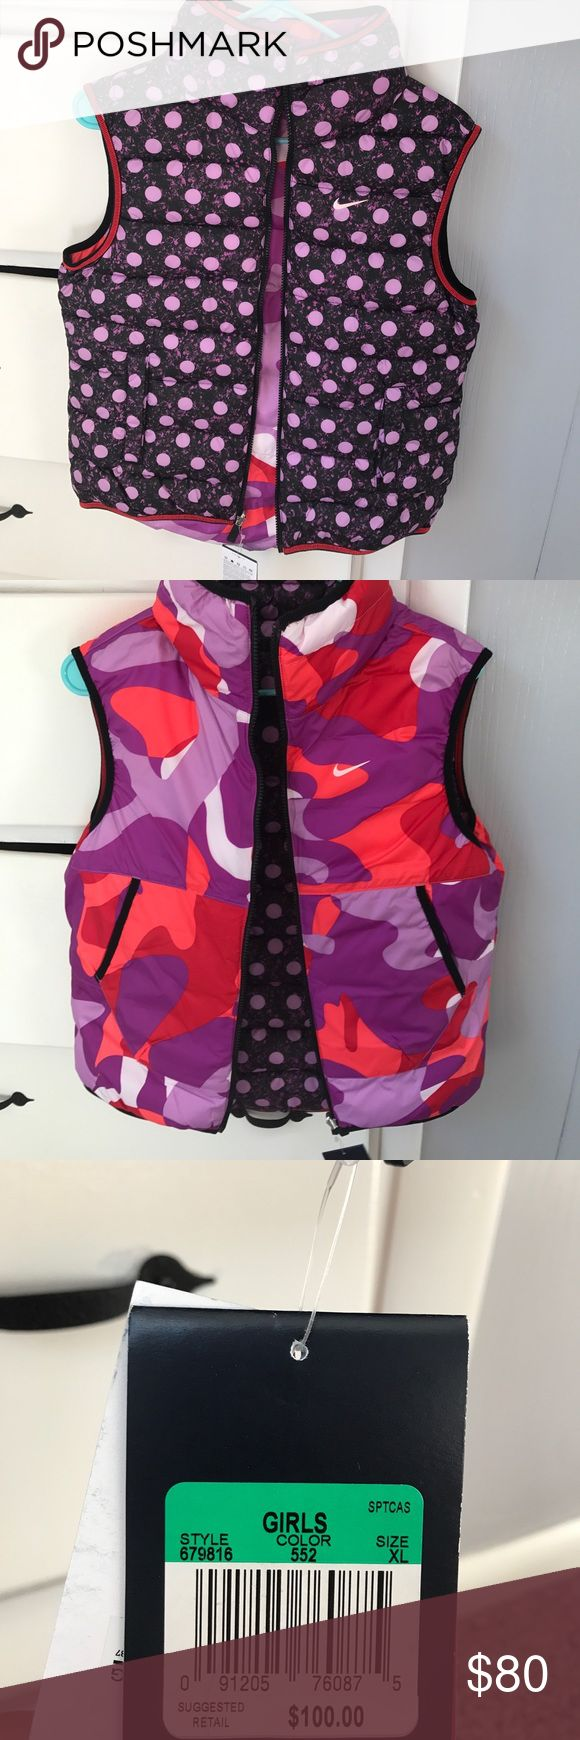 Nike reversible vest Reversible vest with purple and orange camo on one side and purple polka dots on the other sid Nike Jackets & Coats Vests